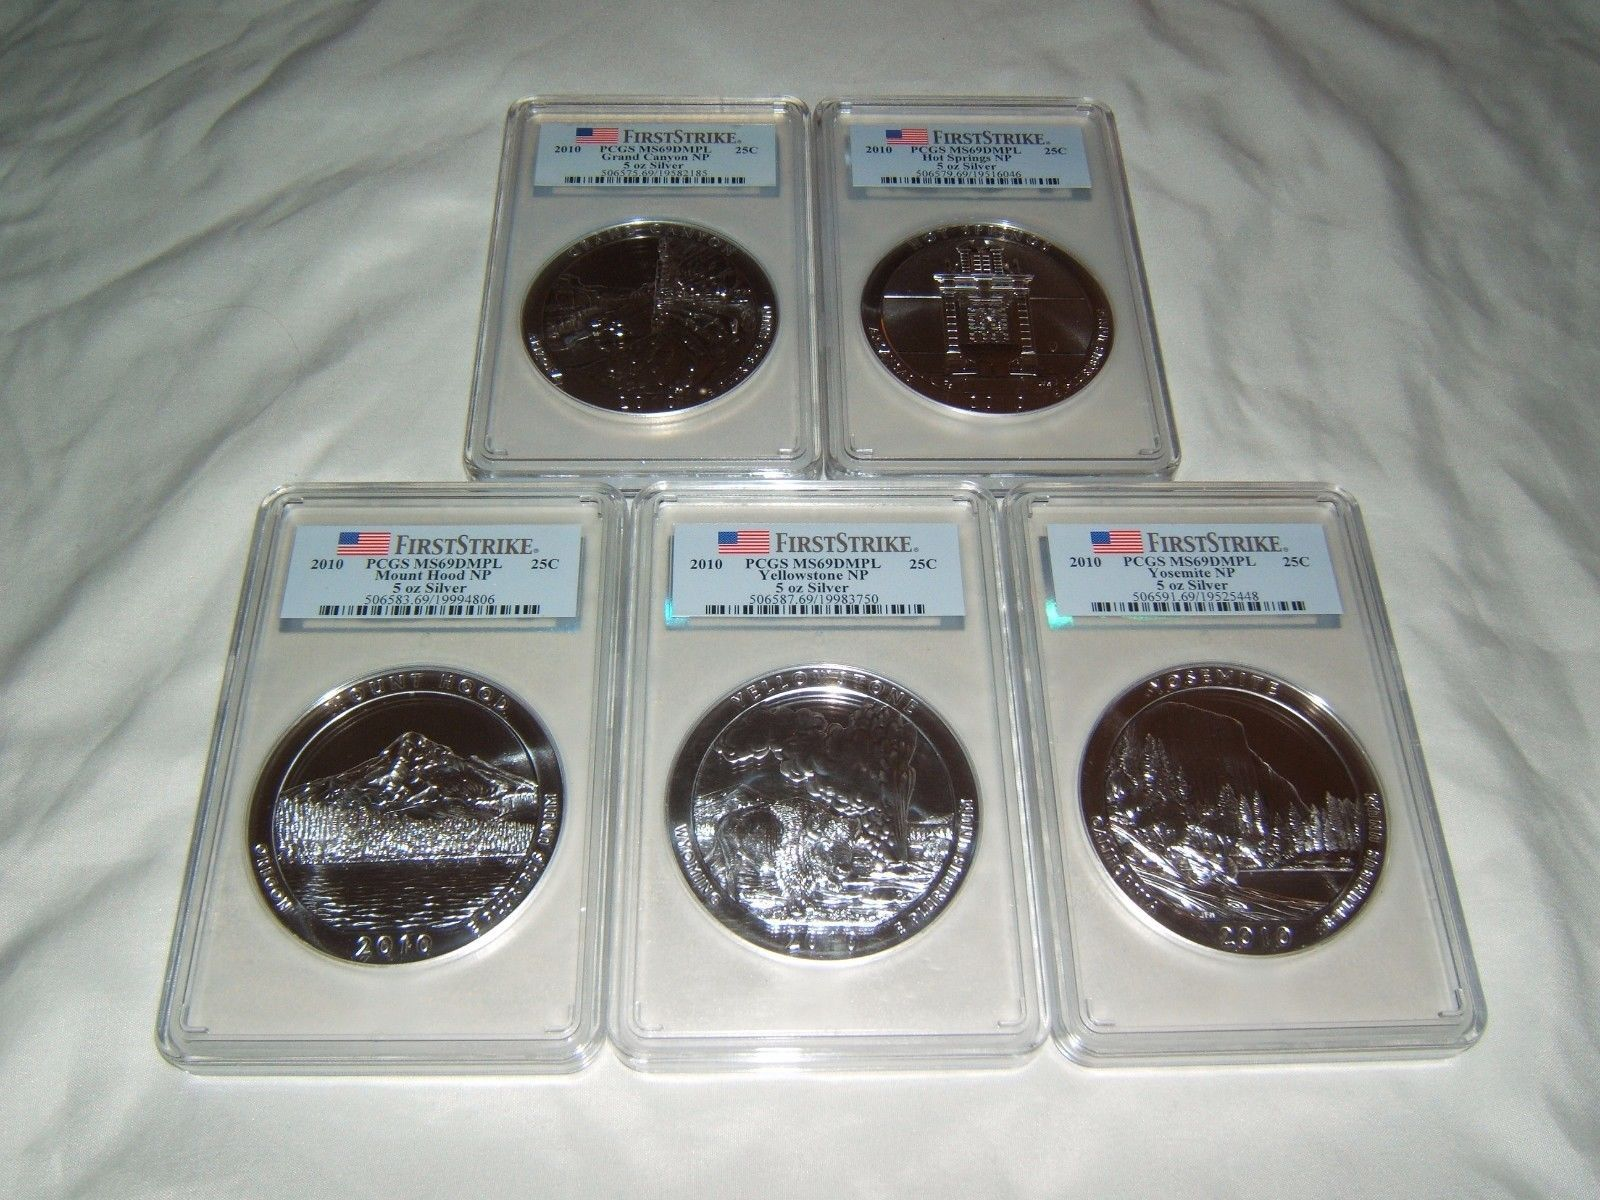 #New post #2010 ATB 5oz silver quarter set PCGS MS69 DMPL First Strike  http://i.ebayimg.com/images/g/qA8AAOSwCU1Yn9Qg/s-l1600.jpg      Item specifics    									 			Coin:   												America the Beautiful  									 			Grade:   												MS69 DMPL    									 			Precious Metal Content:   												5 oz  									 			Year:   												2010    									 			Certification:   												PCGS   							 							  2010... https://www.shopnet.one/2010-atb-5oz-silver-quarter